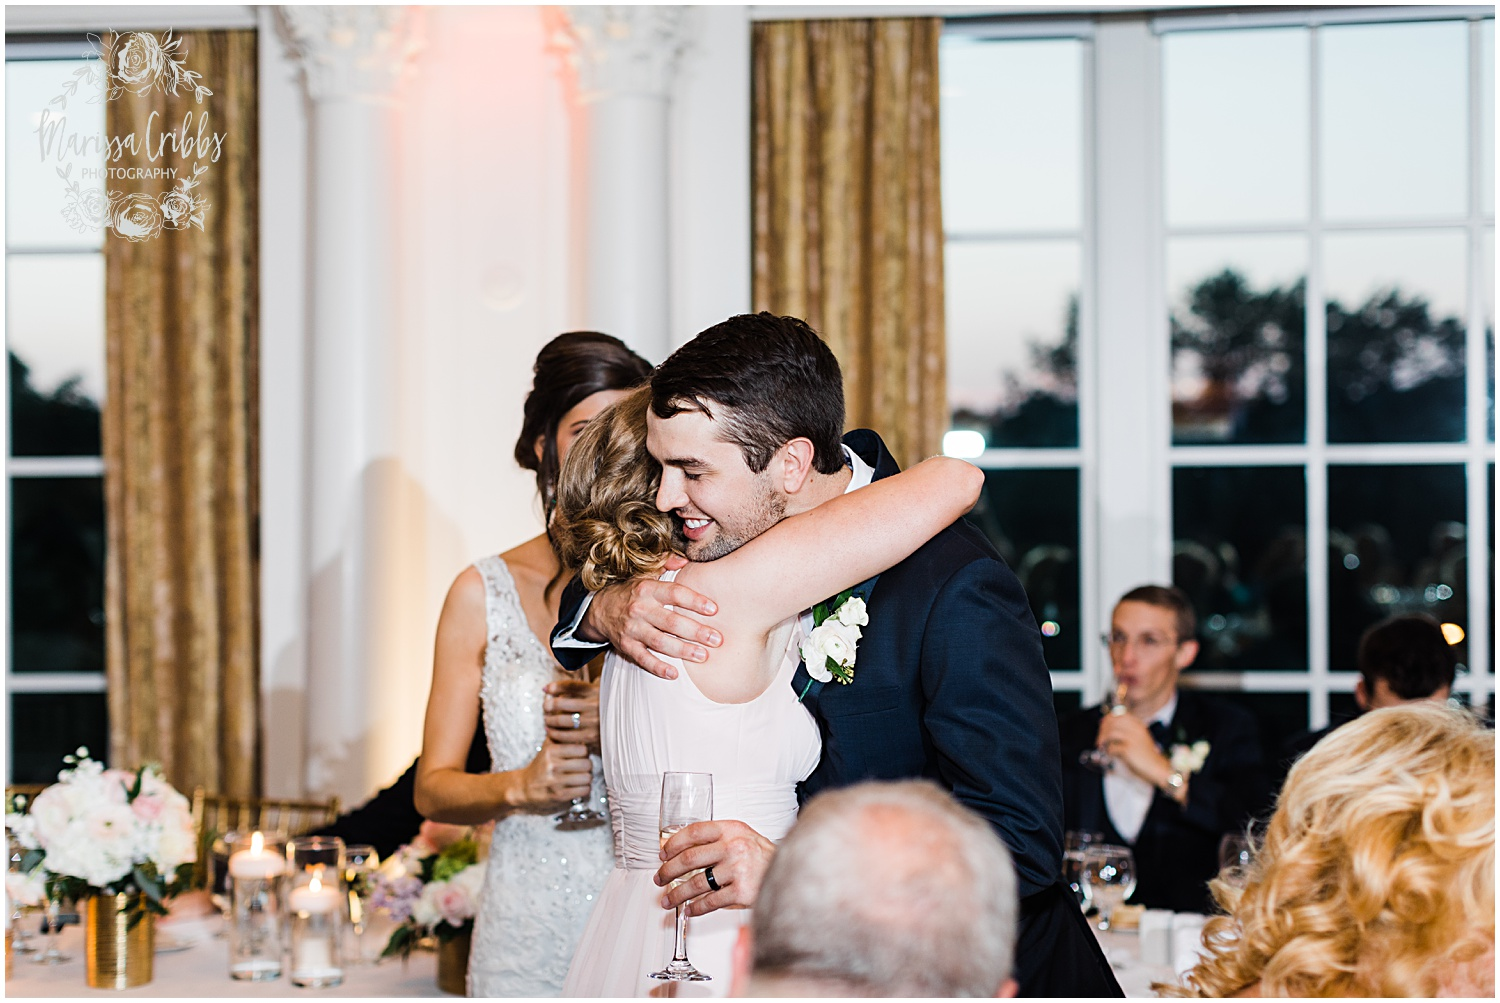 MEGAN & DEREK WEDDING BLOG | MARISSA CRIBBS PHOTOGRAPHY_8224.jpg